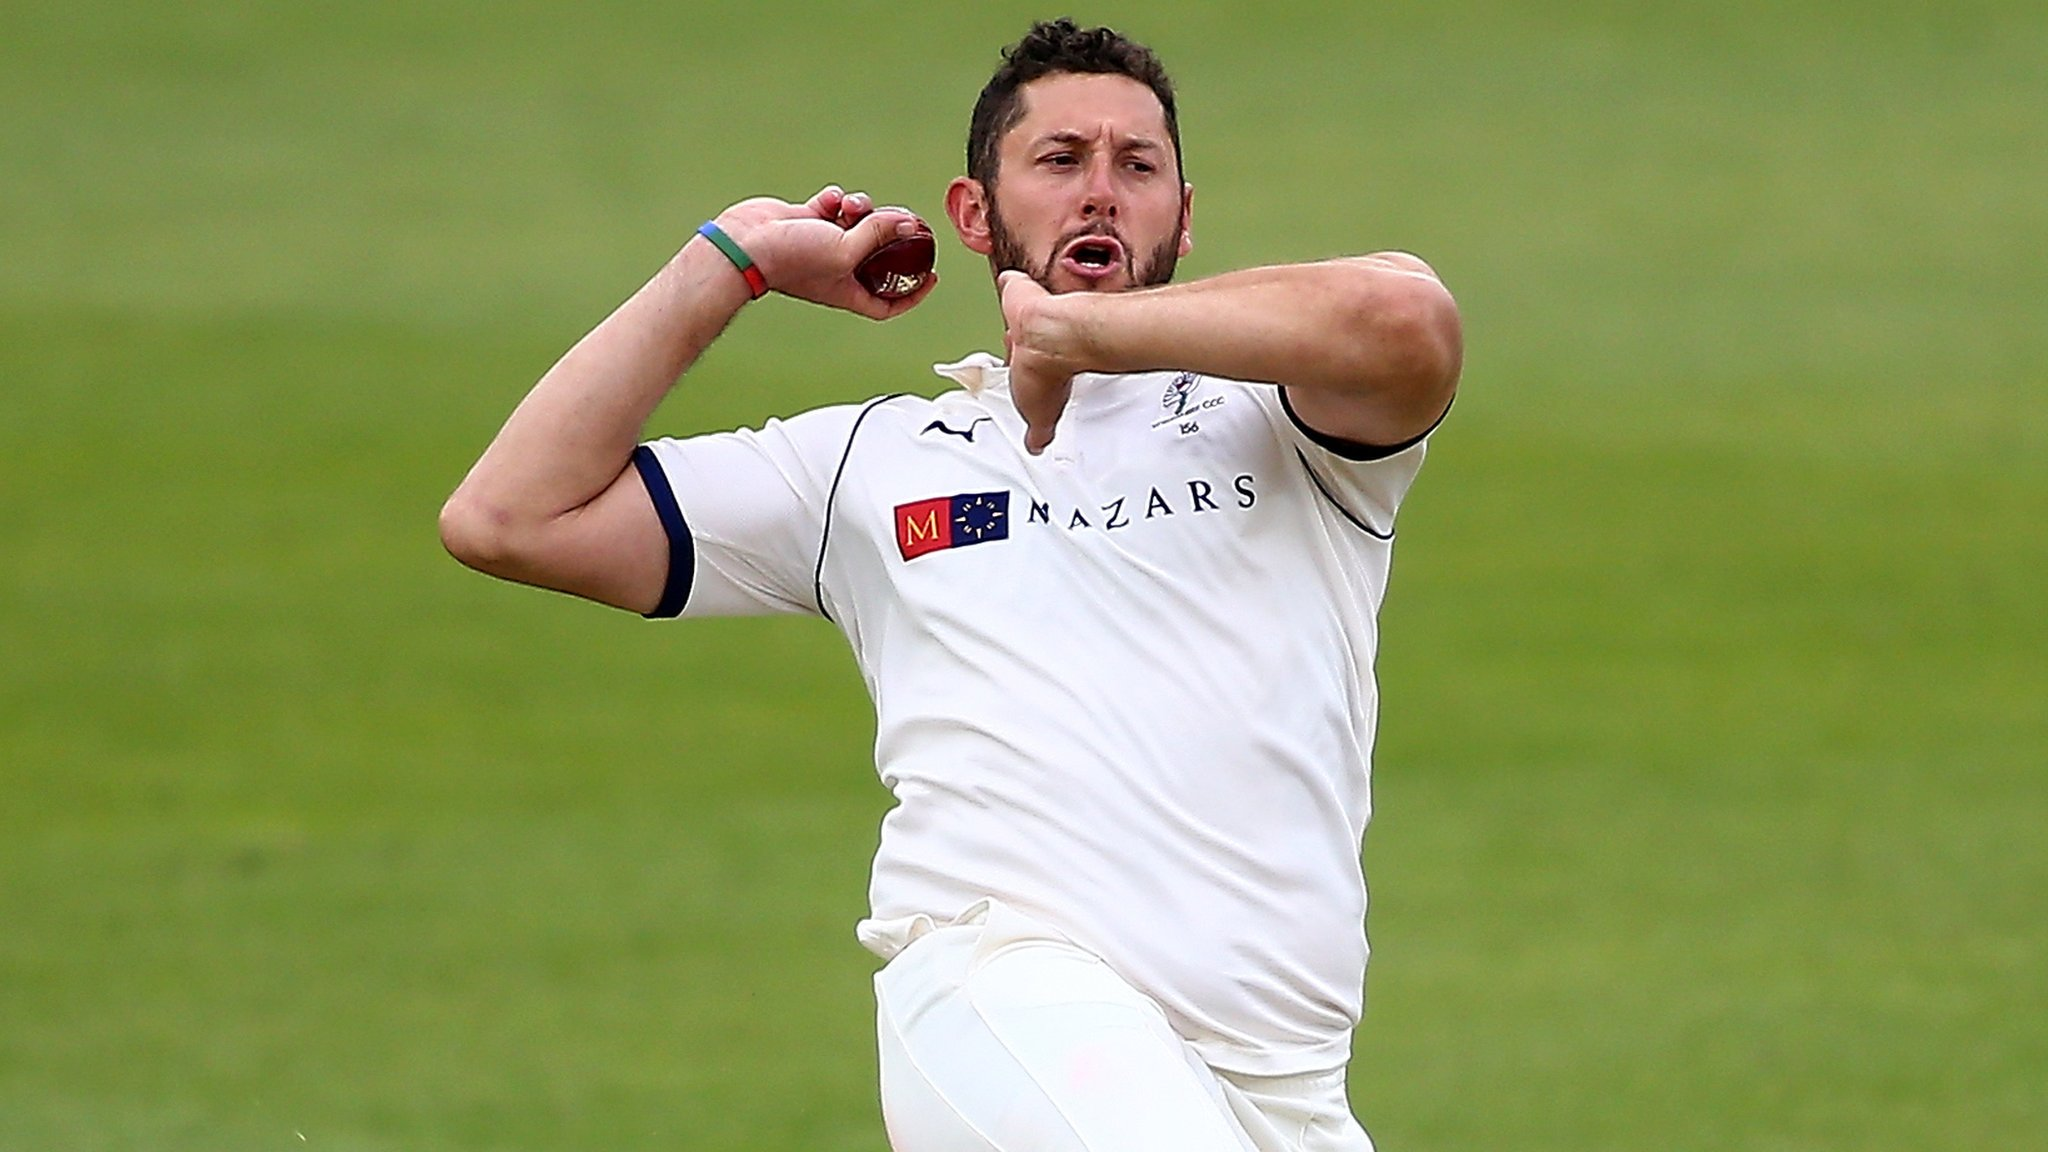 County Championship: Tim Bresnan takes 5-28 as Tykes forge ahead against Hants | BBC